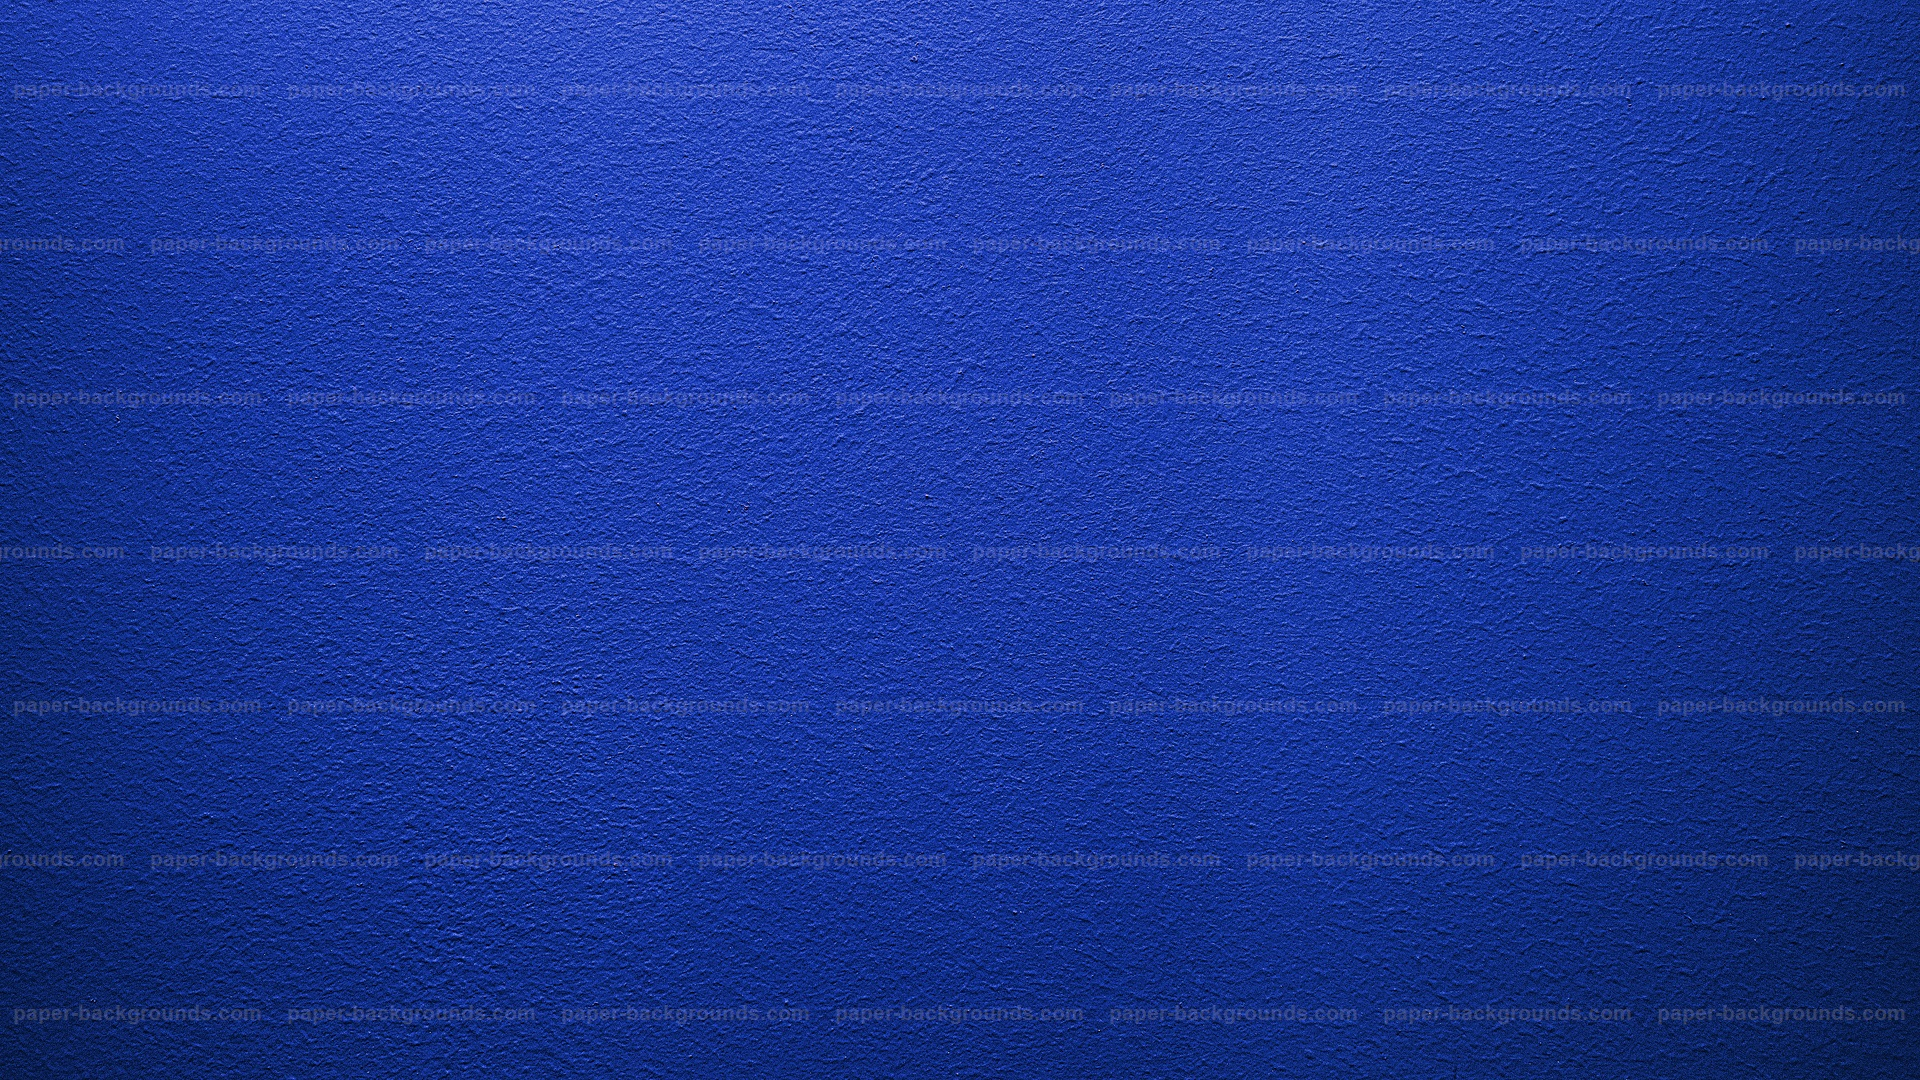 Blue Painted Wall Texture Background HD